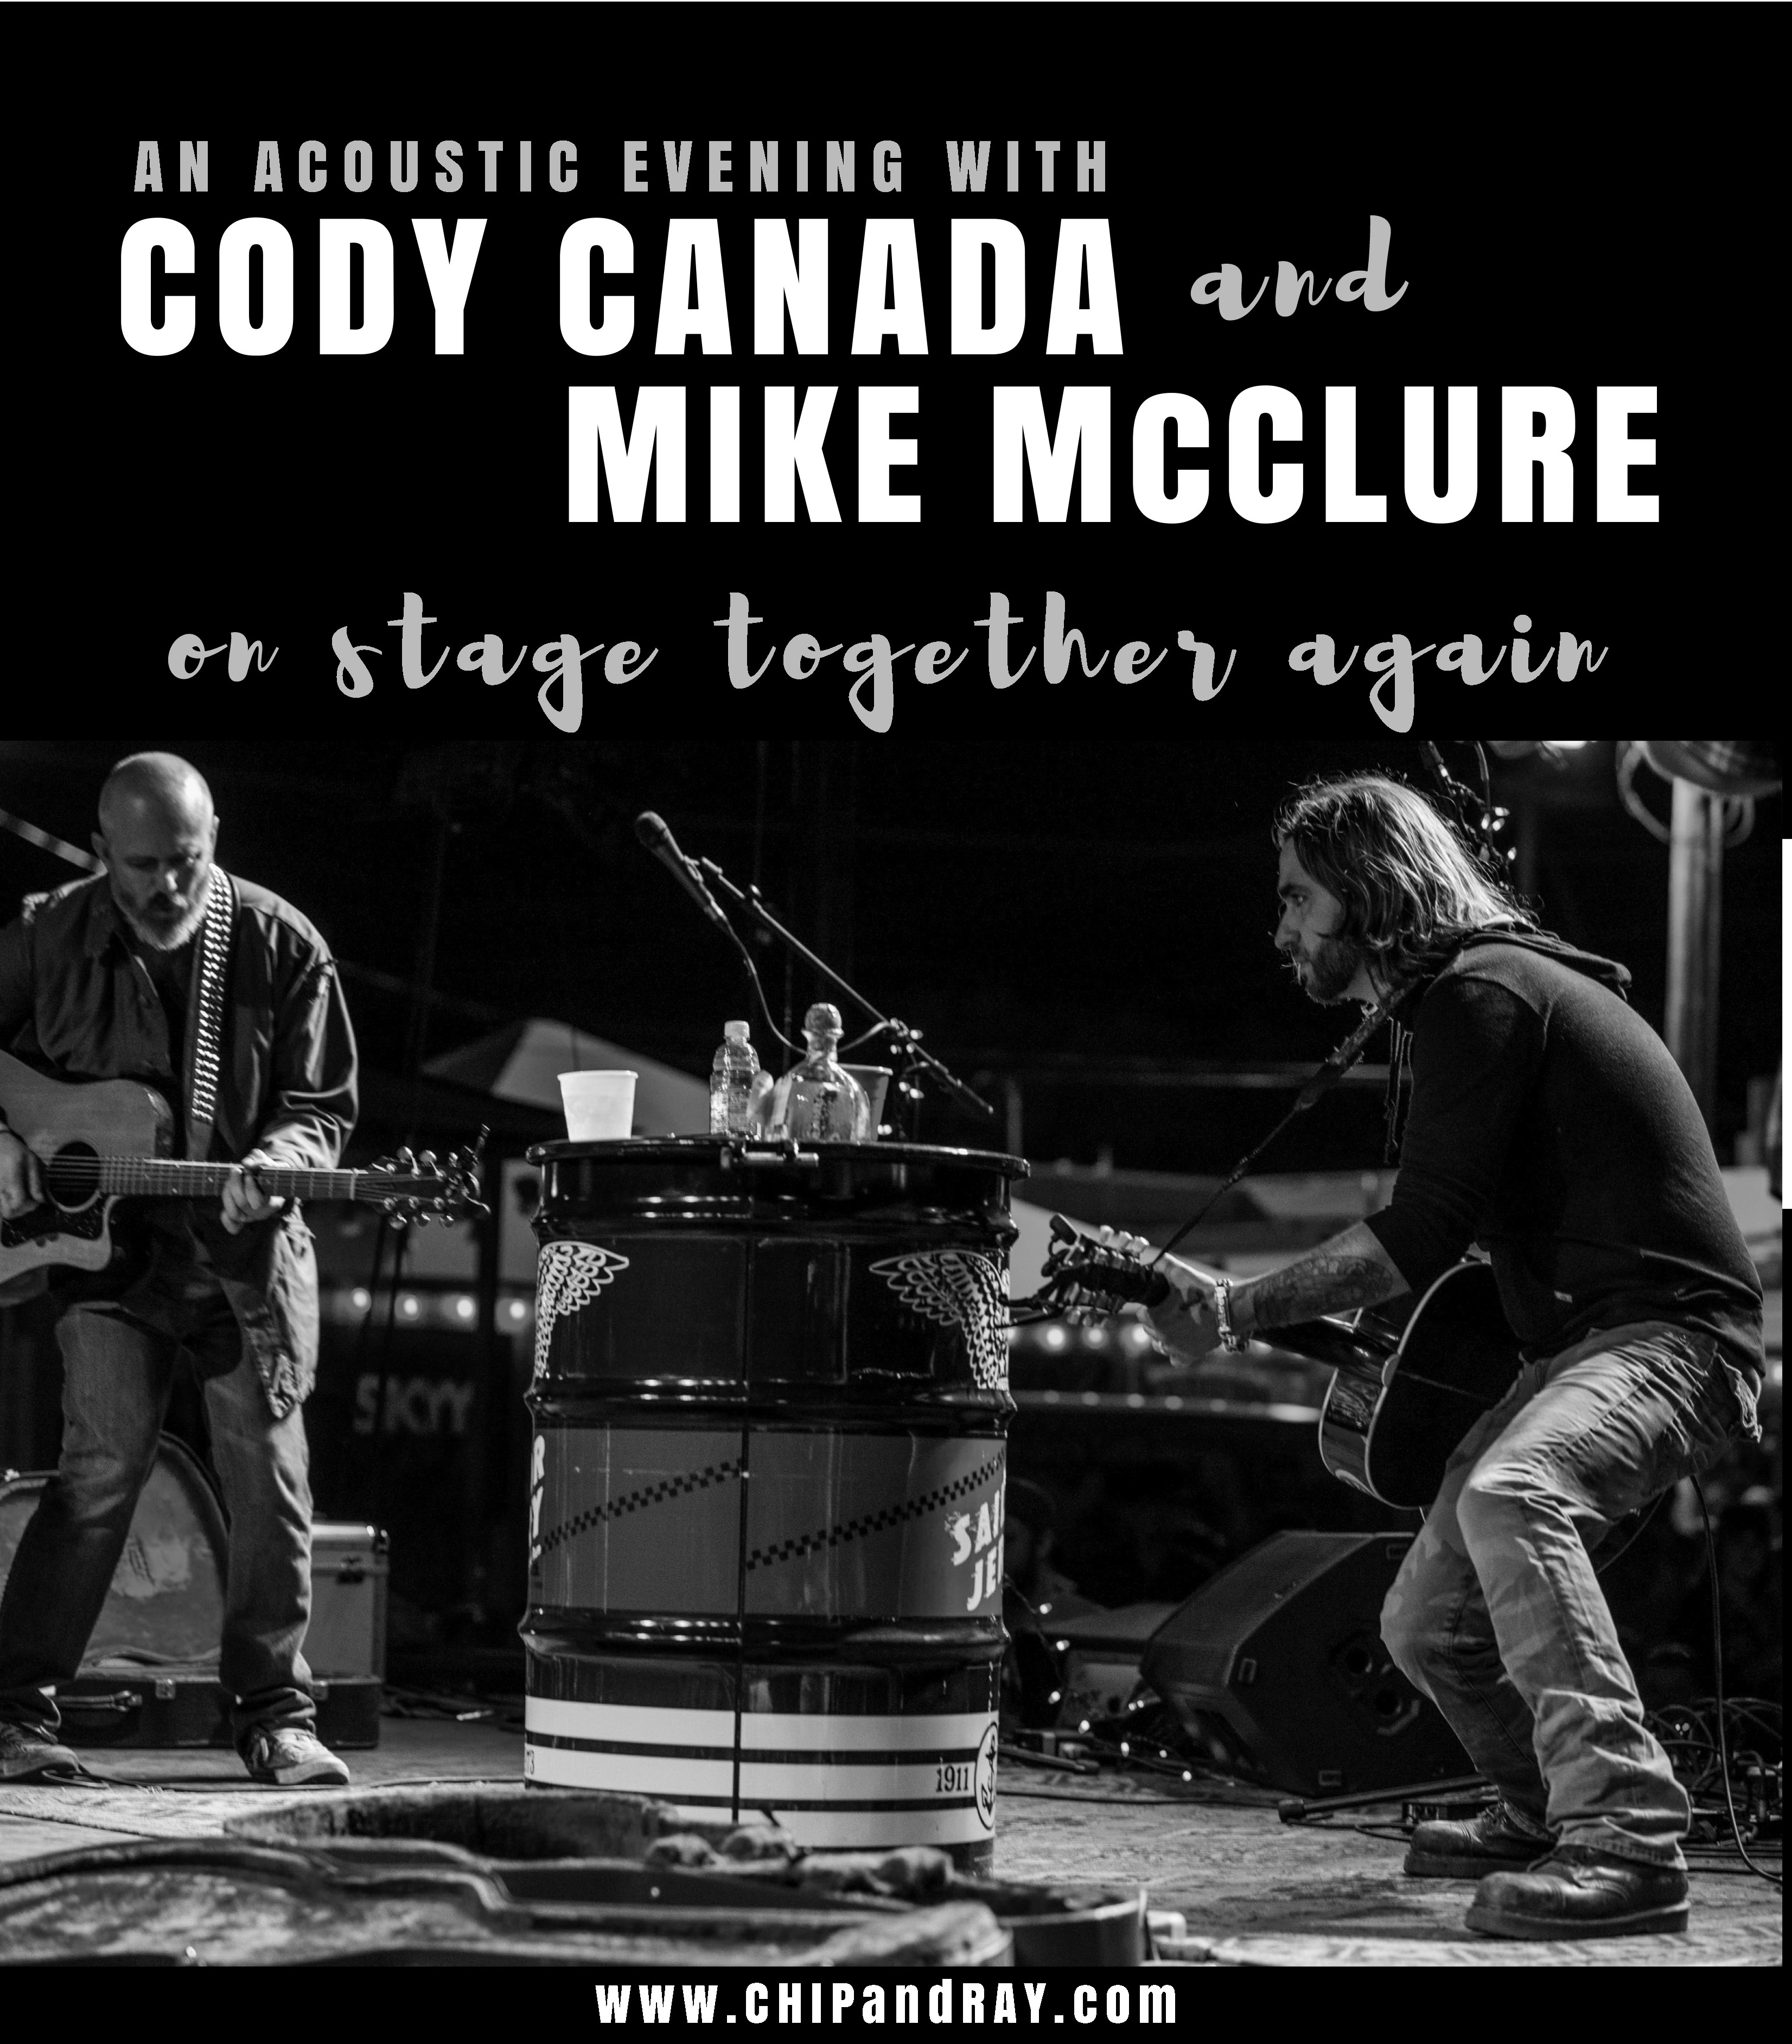 Cody Canada and Mike McClure